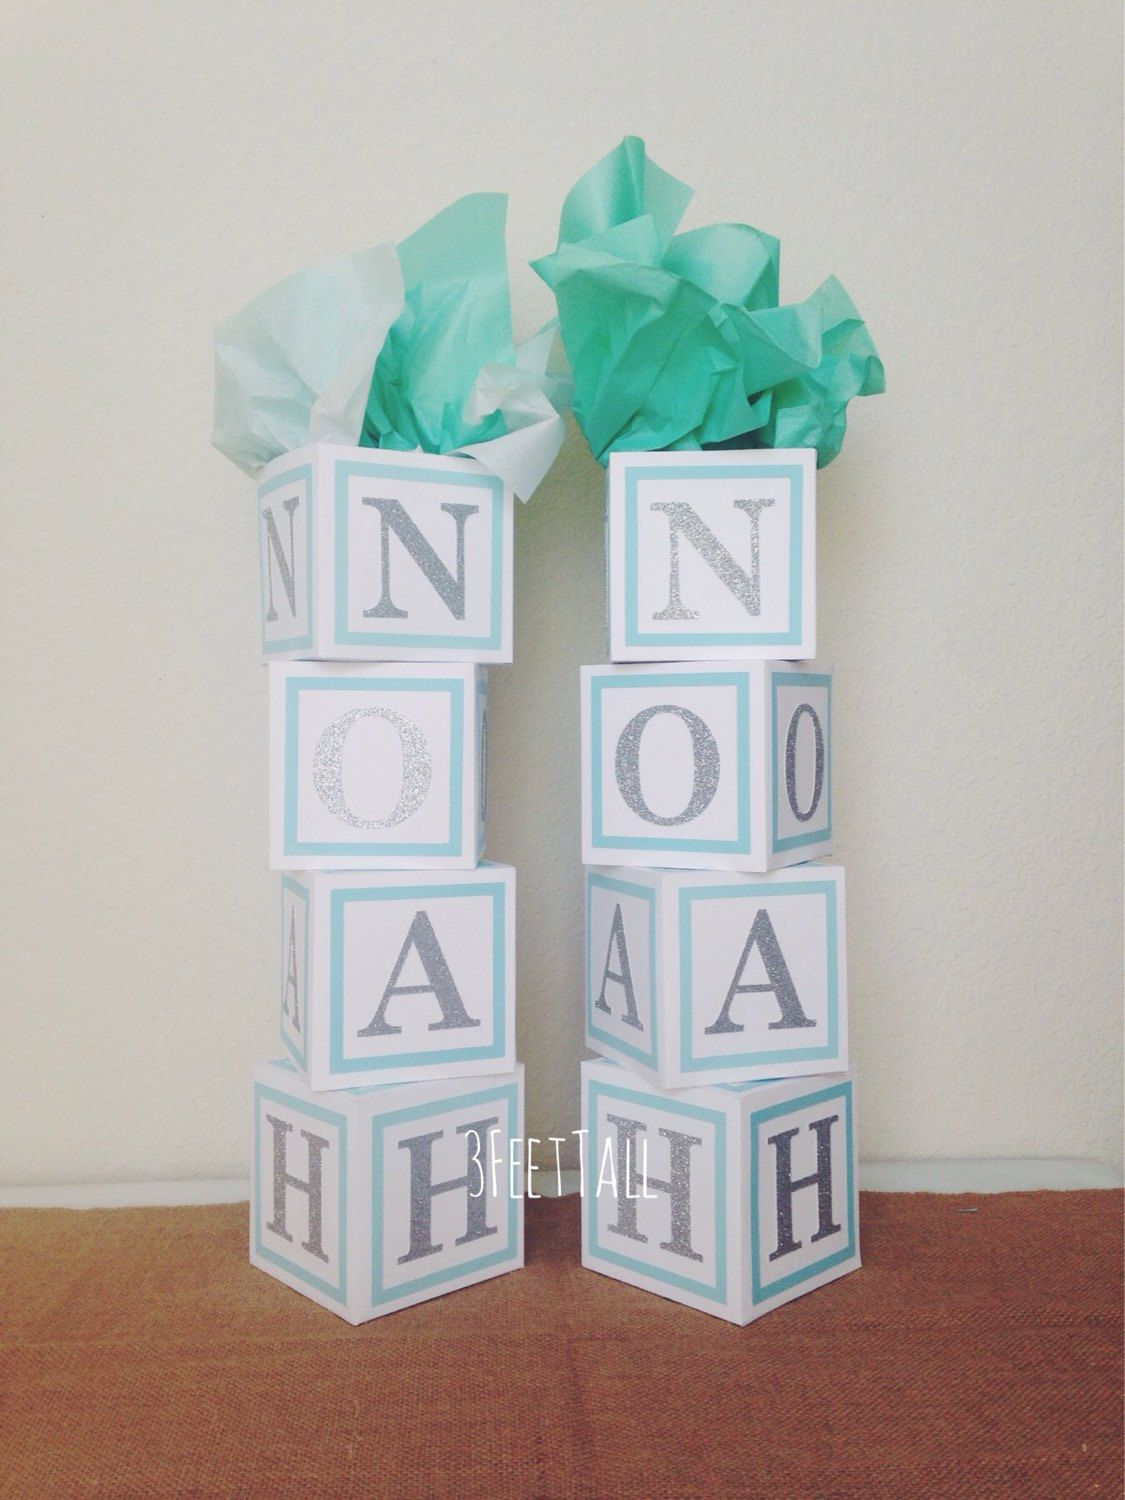 Deco Block Ideas Baby Shower Centerpiece Alphabet Block Centerpiece By